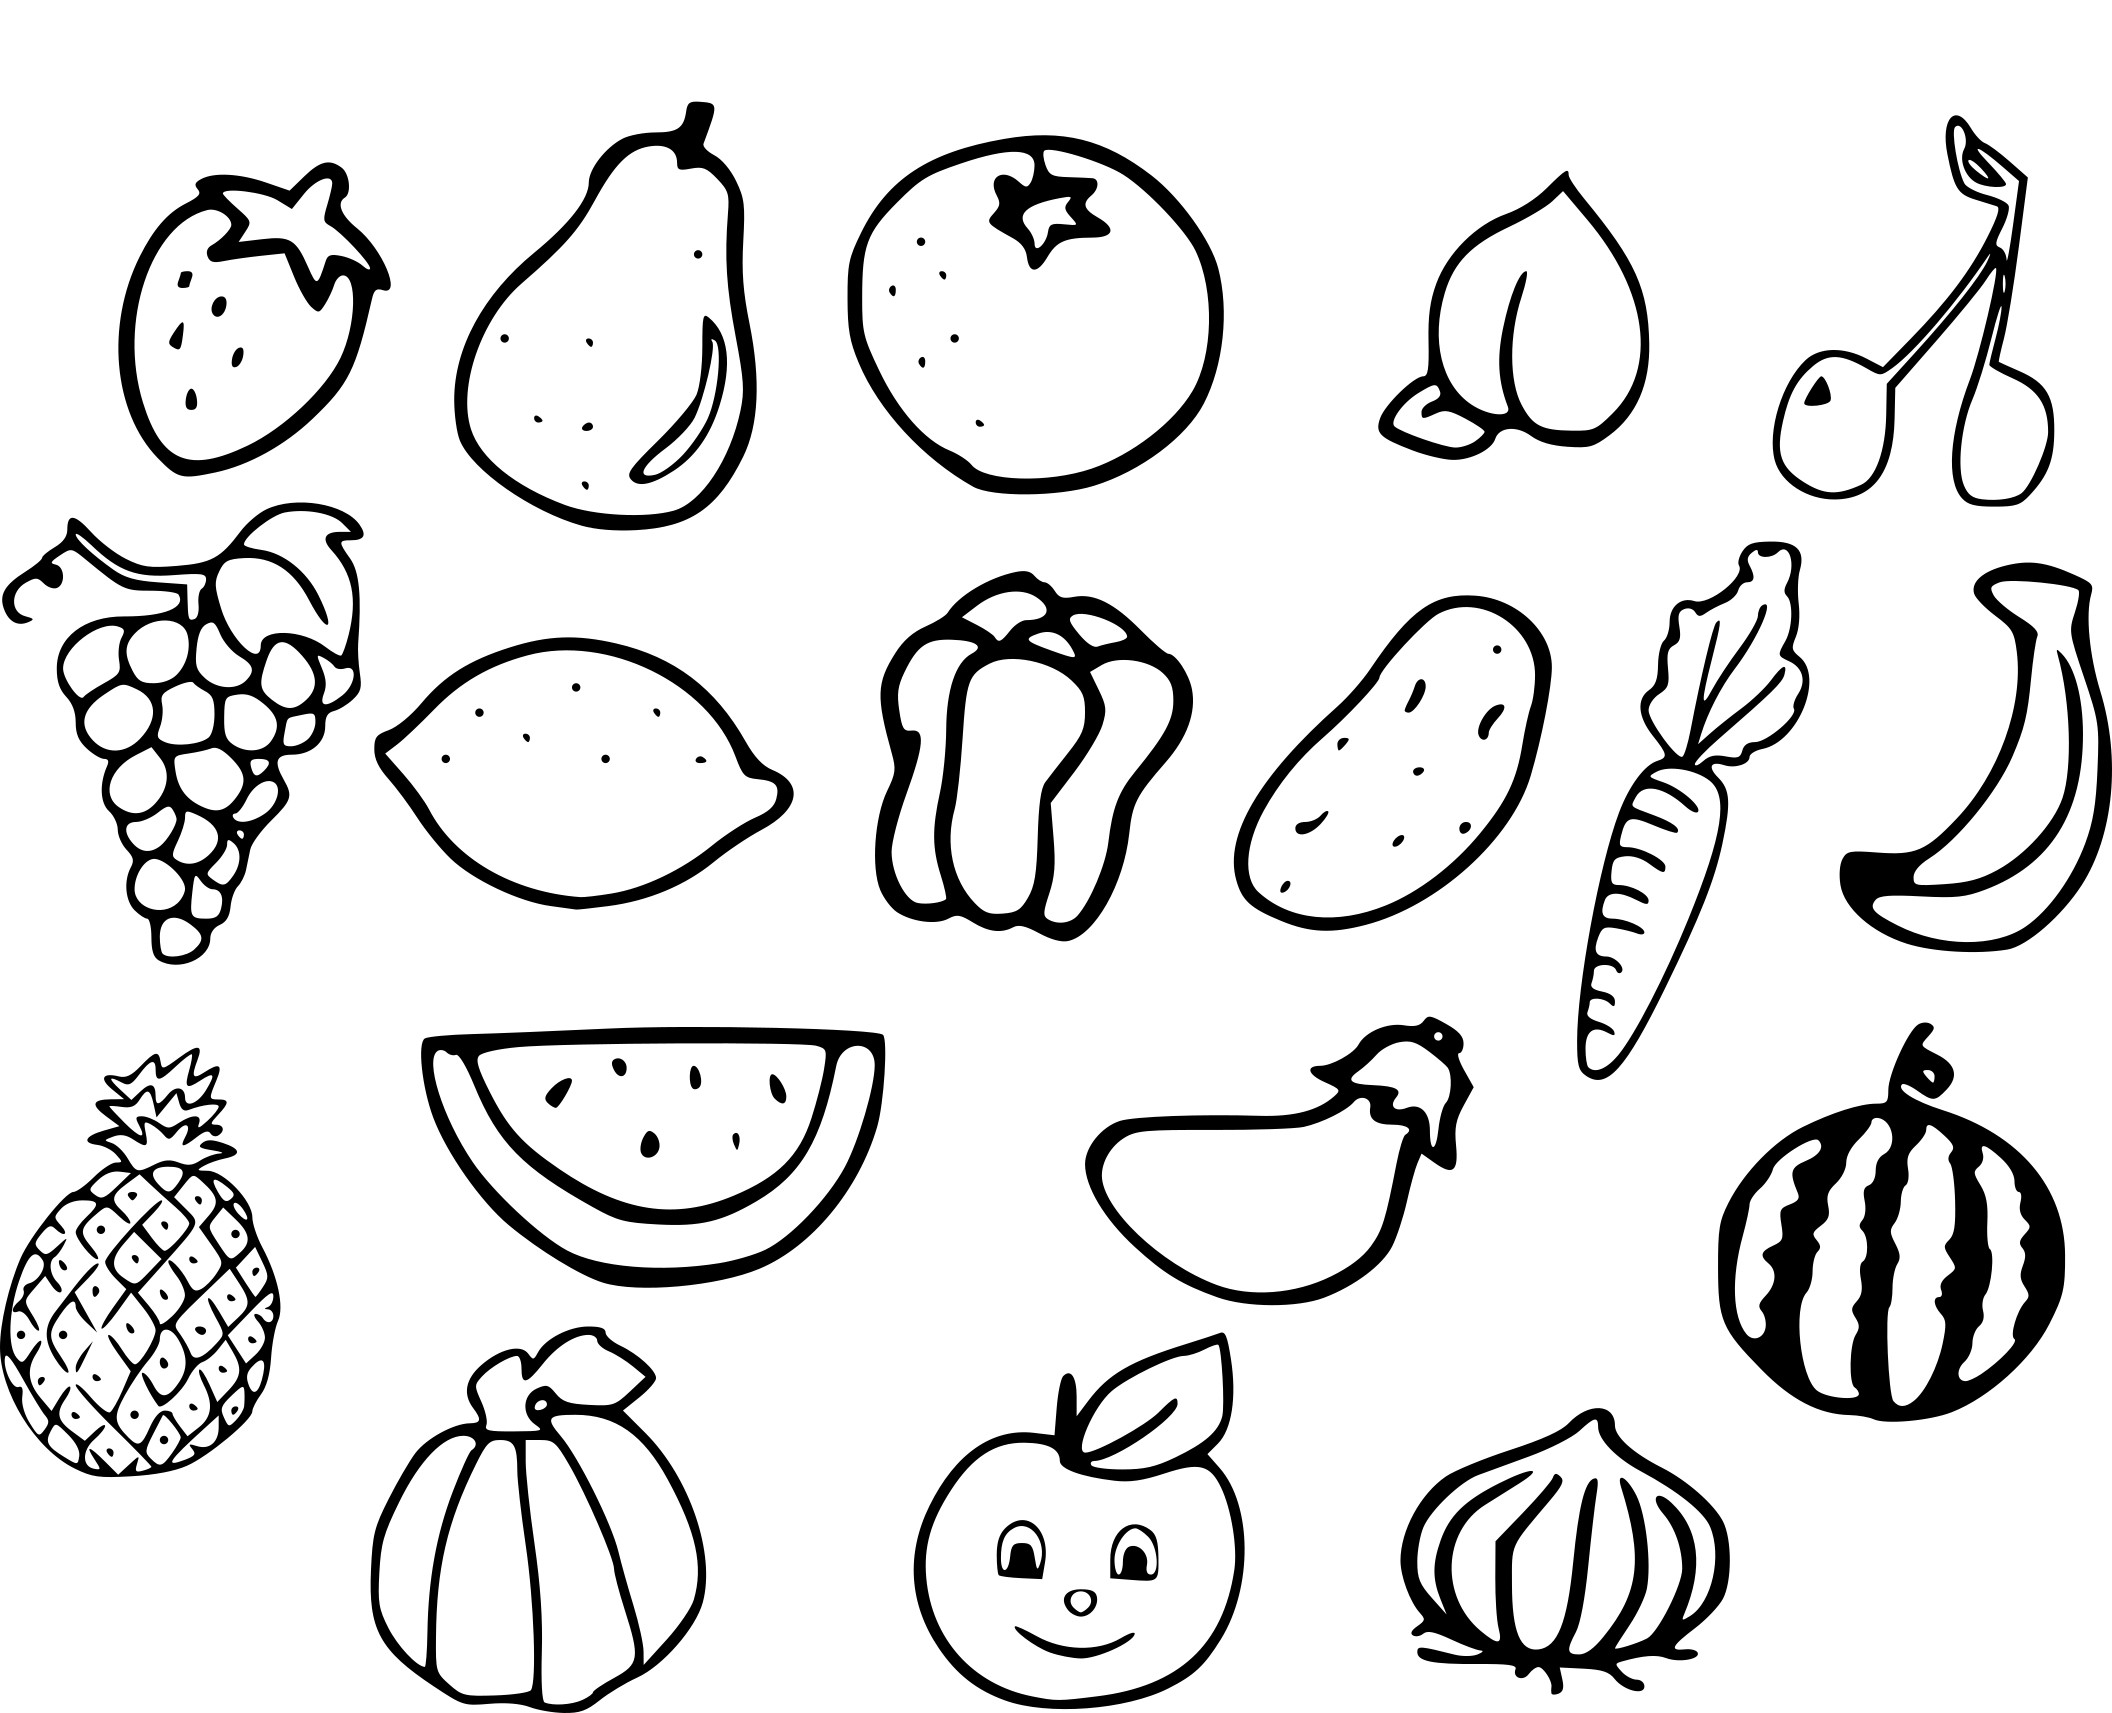 Dessins coloriages pour enfants legumes - Fruits coloriage ...